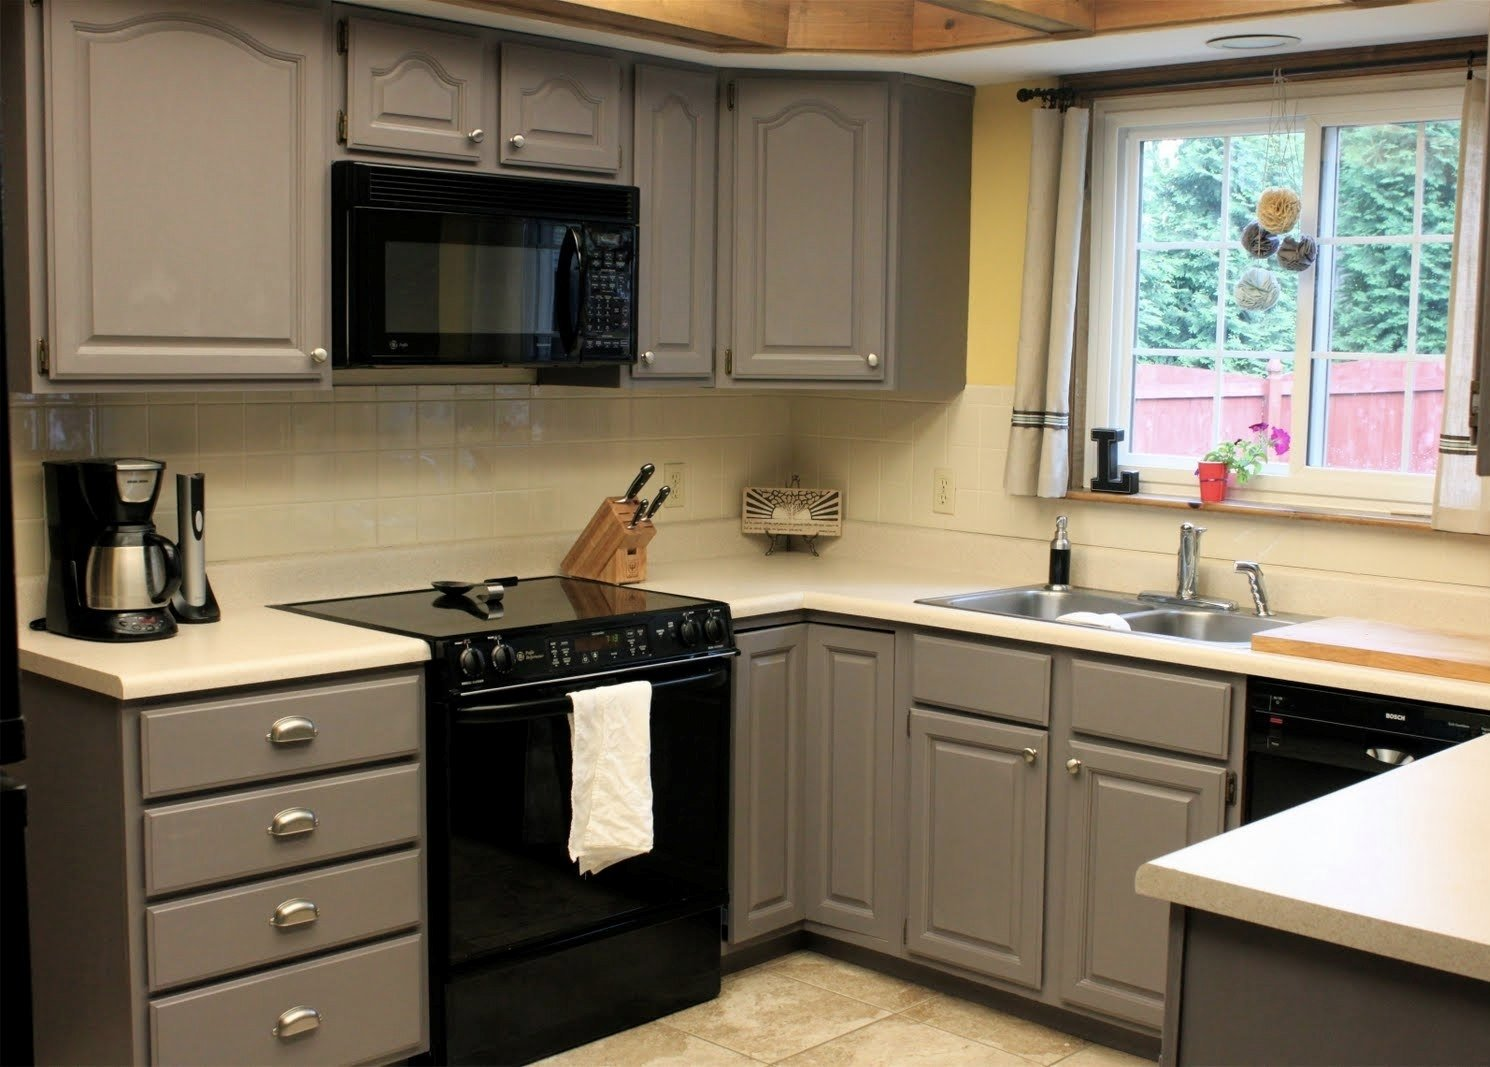 10 Fantastic Ideas For Painting Kitchen Cabinets